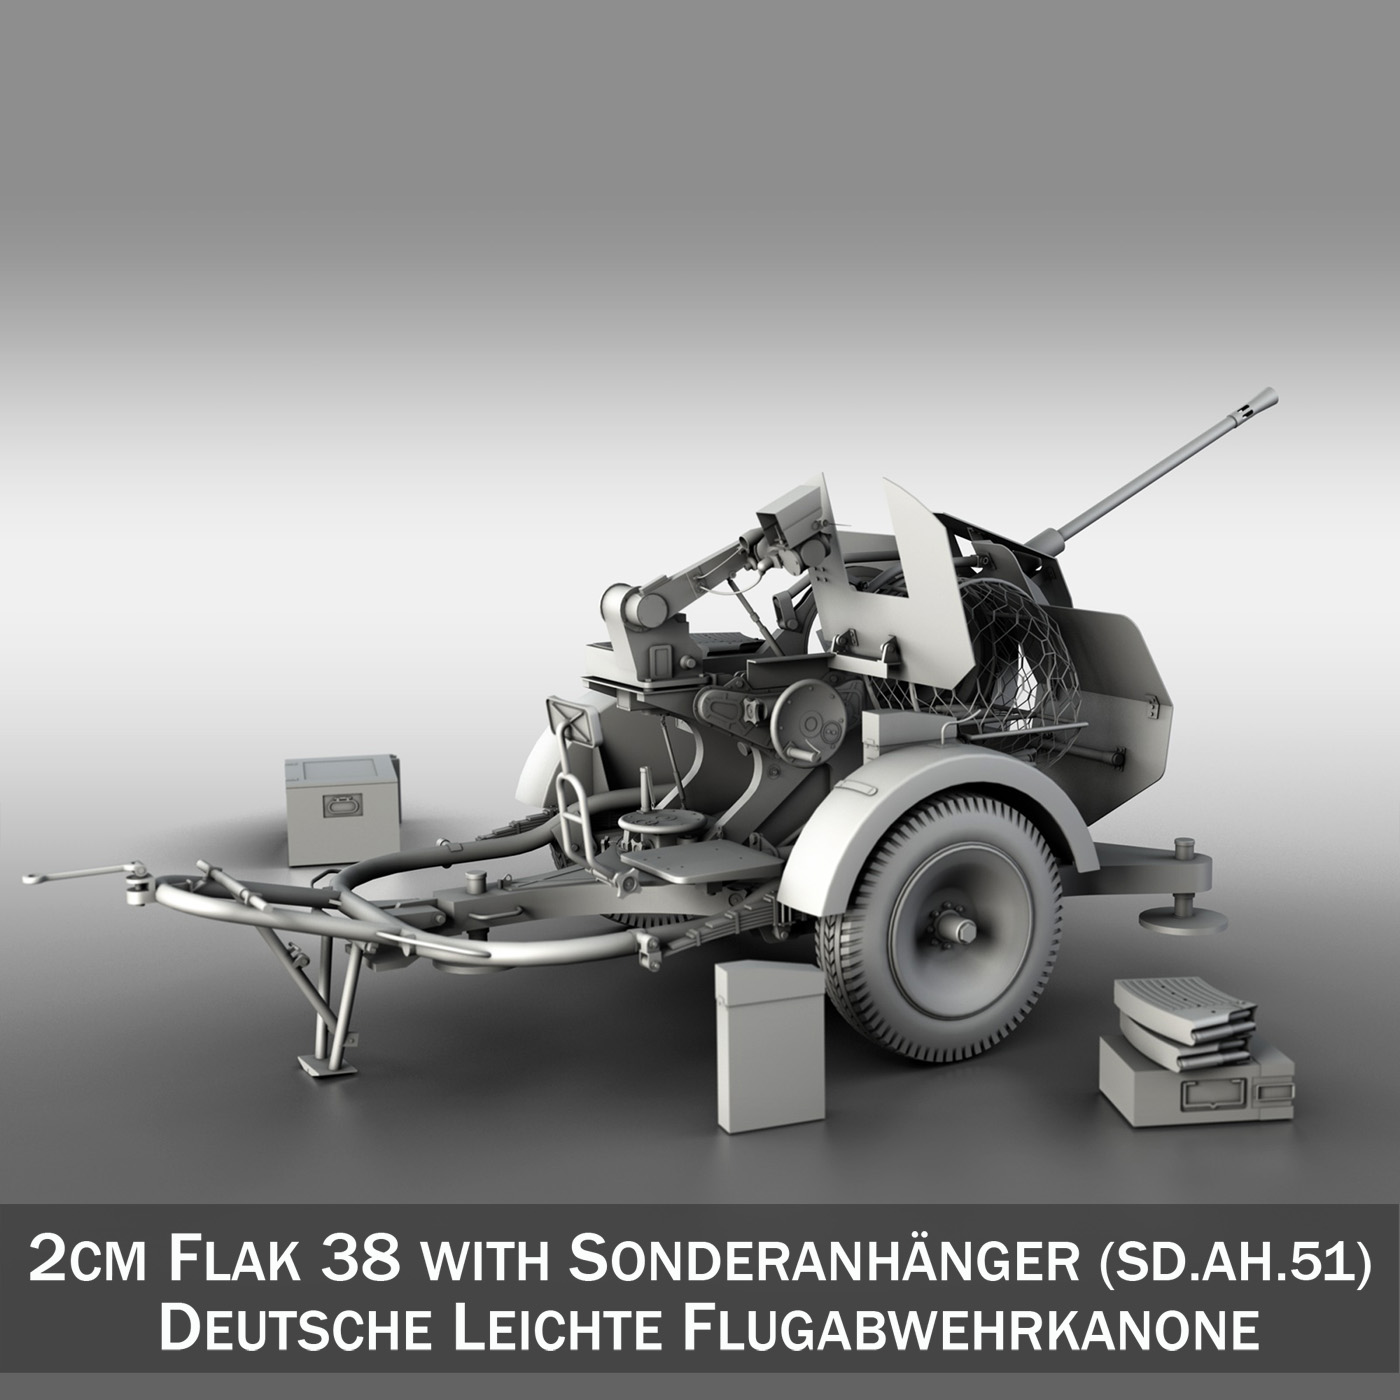 2cm flak 38 with sd.ah. 51 – trailer 3d model 3ds c4d fbx lwo lw lws obj 267210